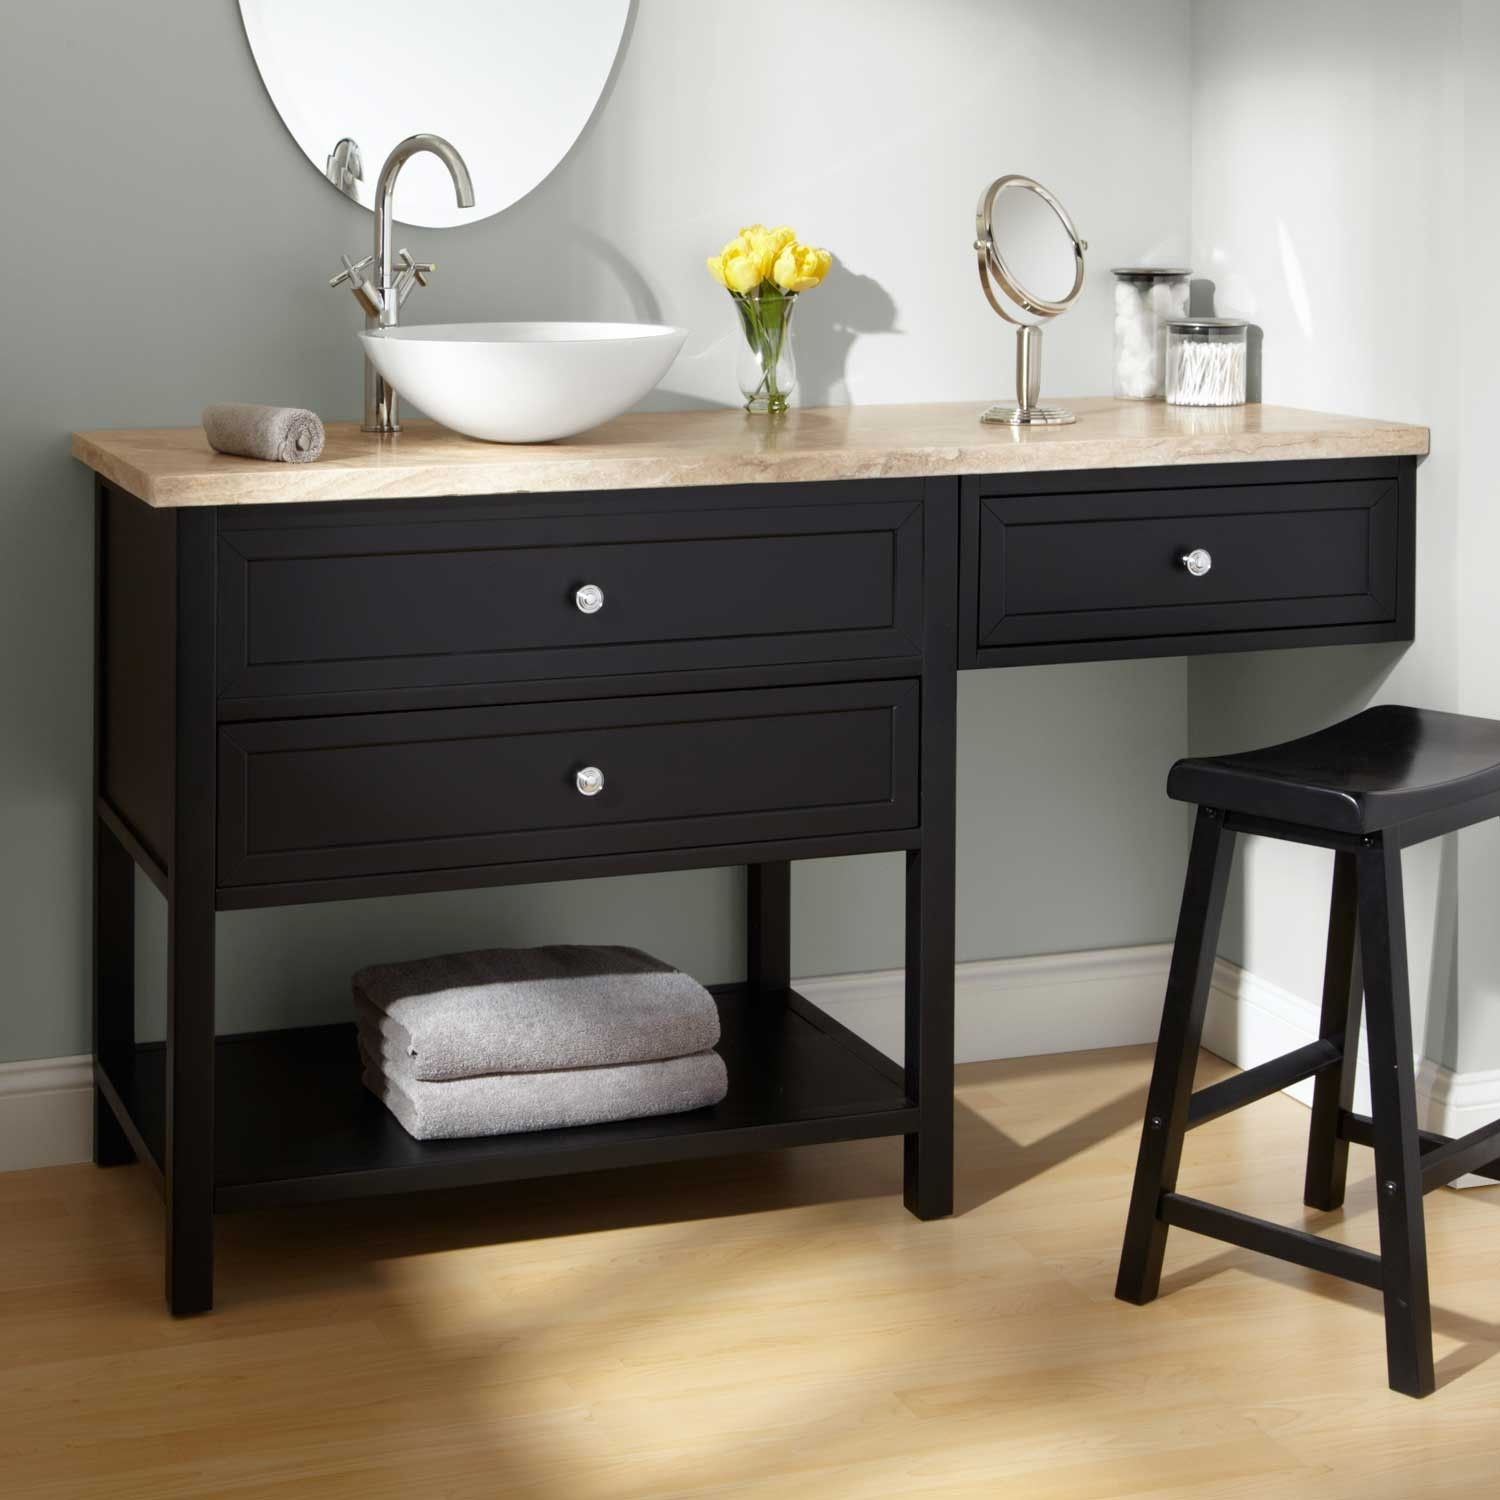 Bathroom Makeup Vanity And Chair Sink Vanities 60 Taren Black Vessel Sink Vanity With Makeup Area Small Bathroom Redo Bathroom Vanity Vanity Redo